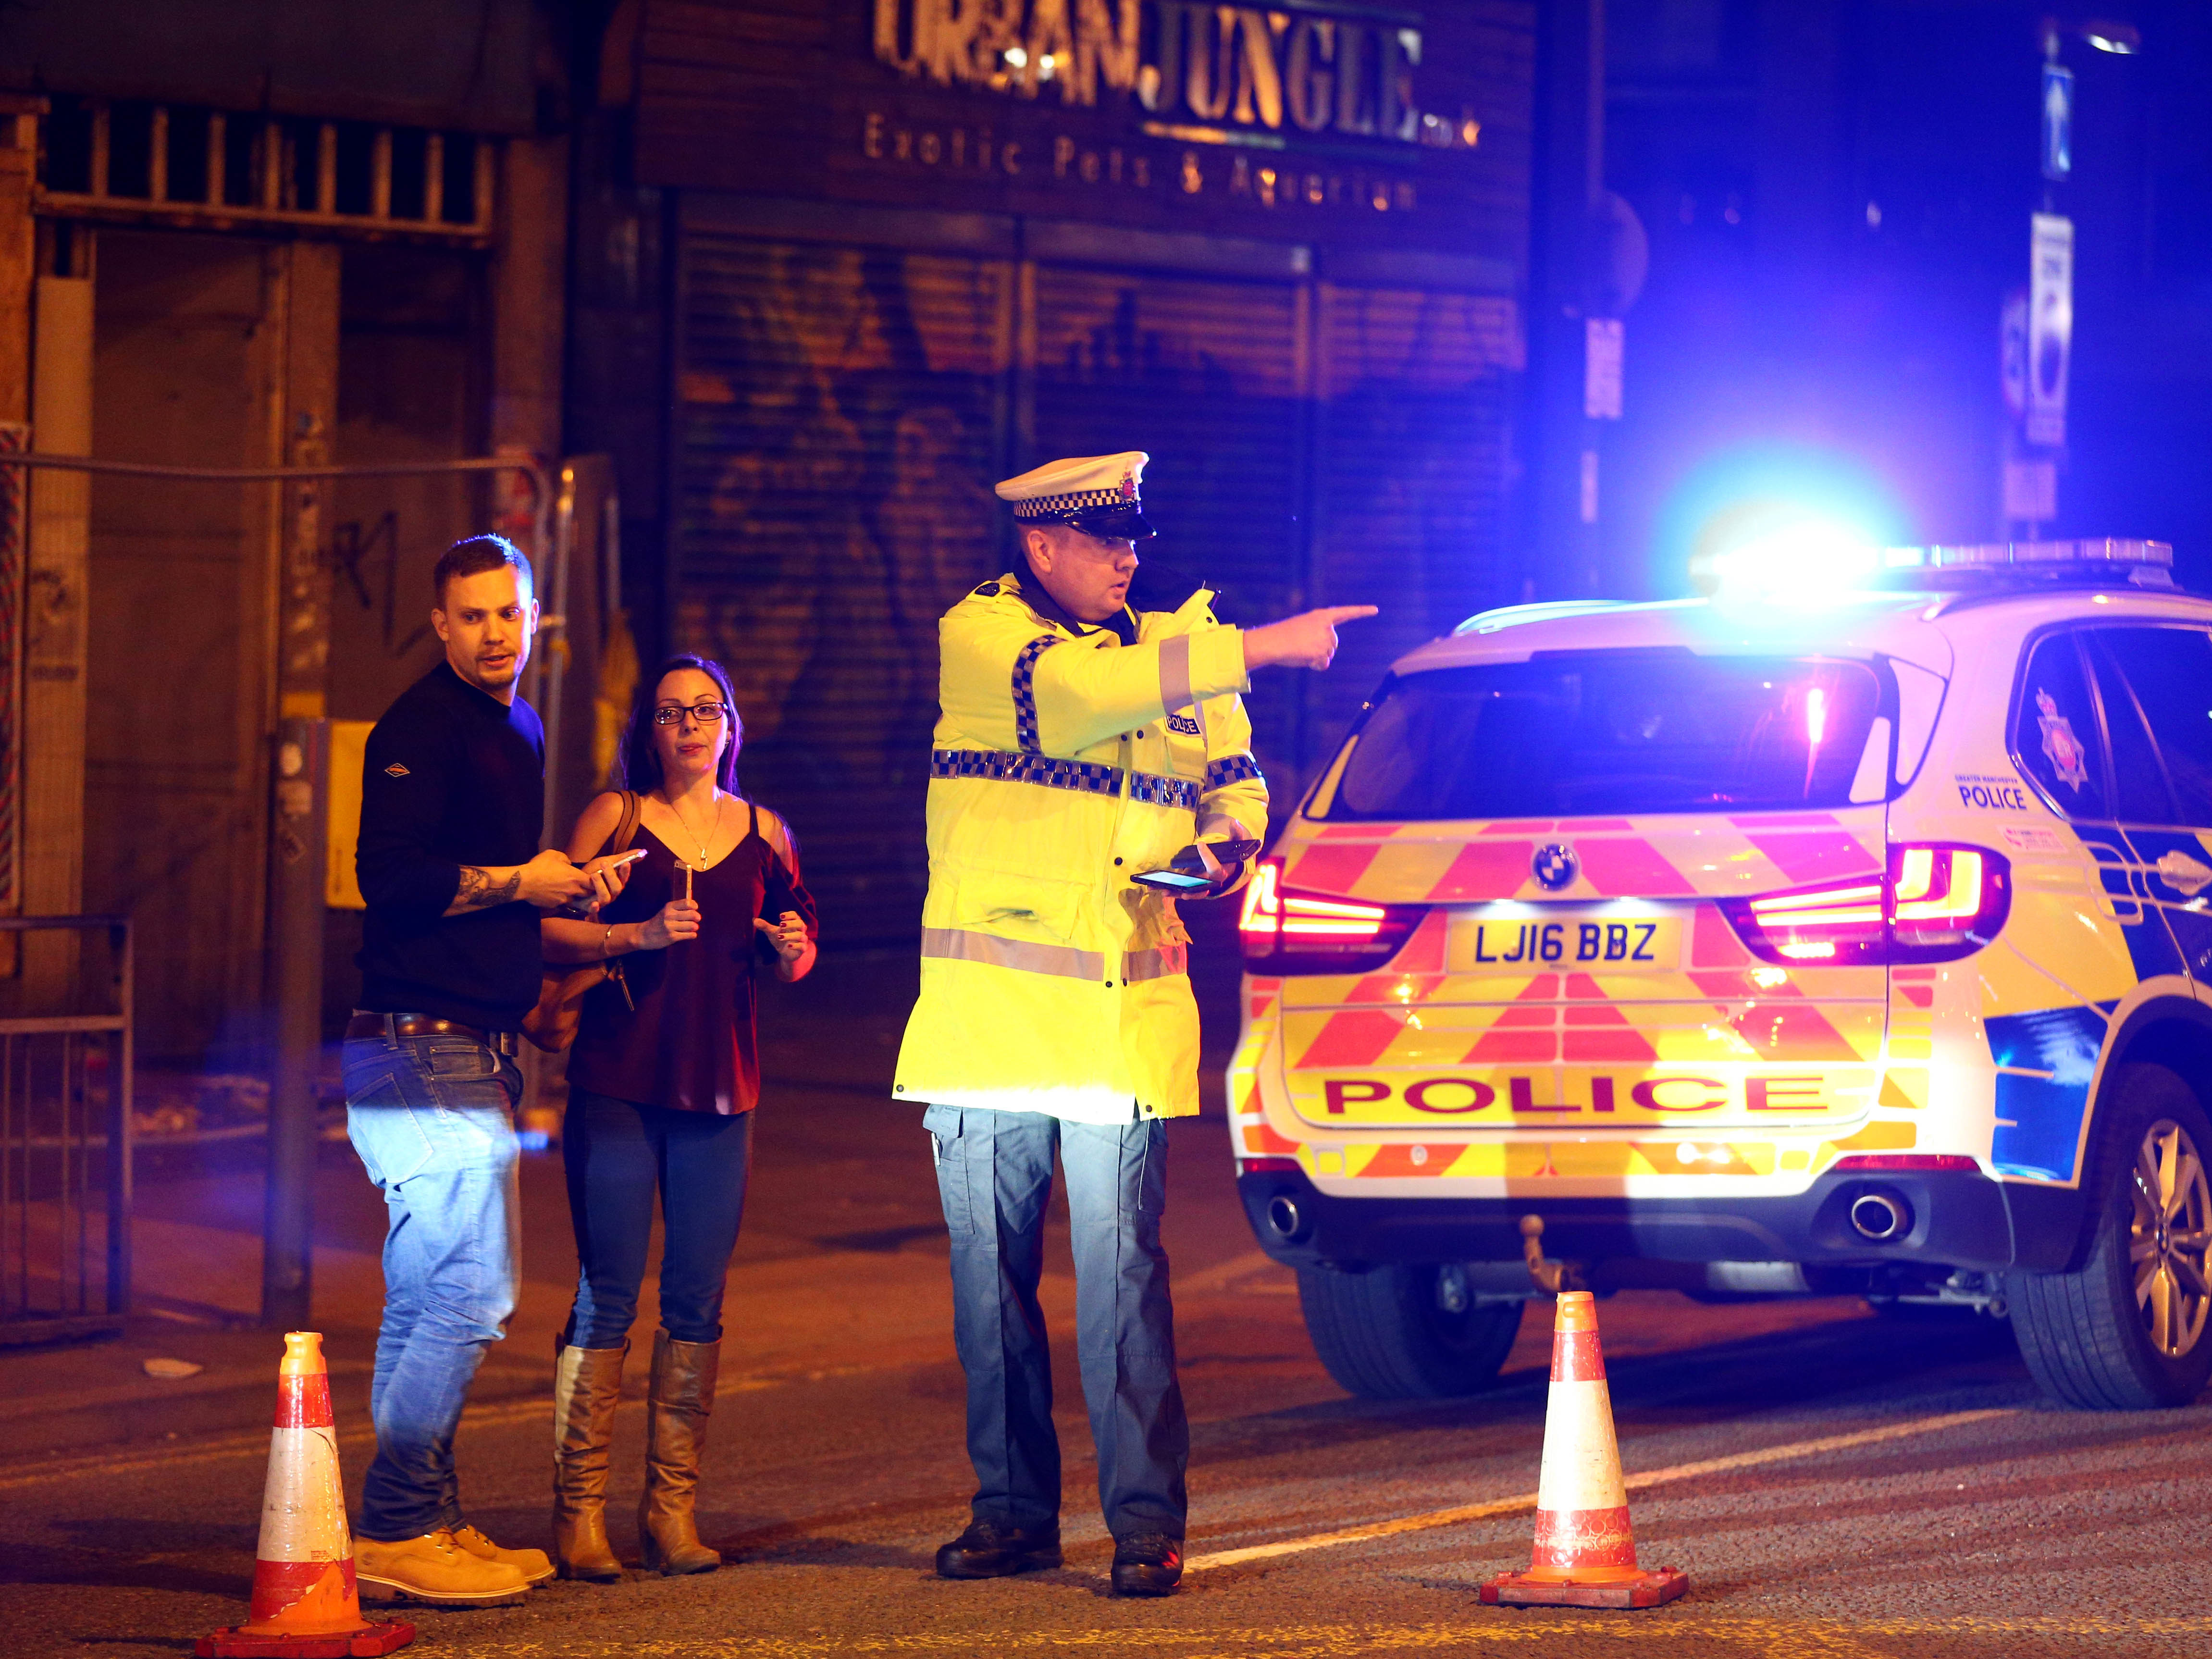 United Kingdom police say 23-year-old man arrested over Manchester attack